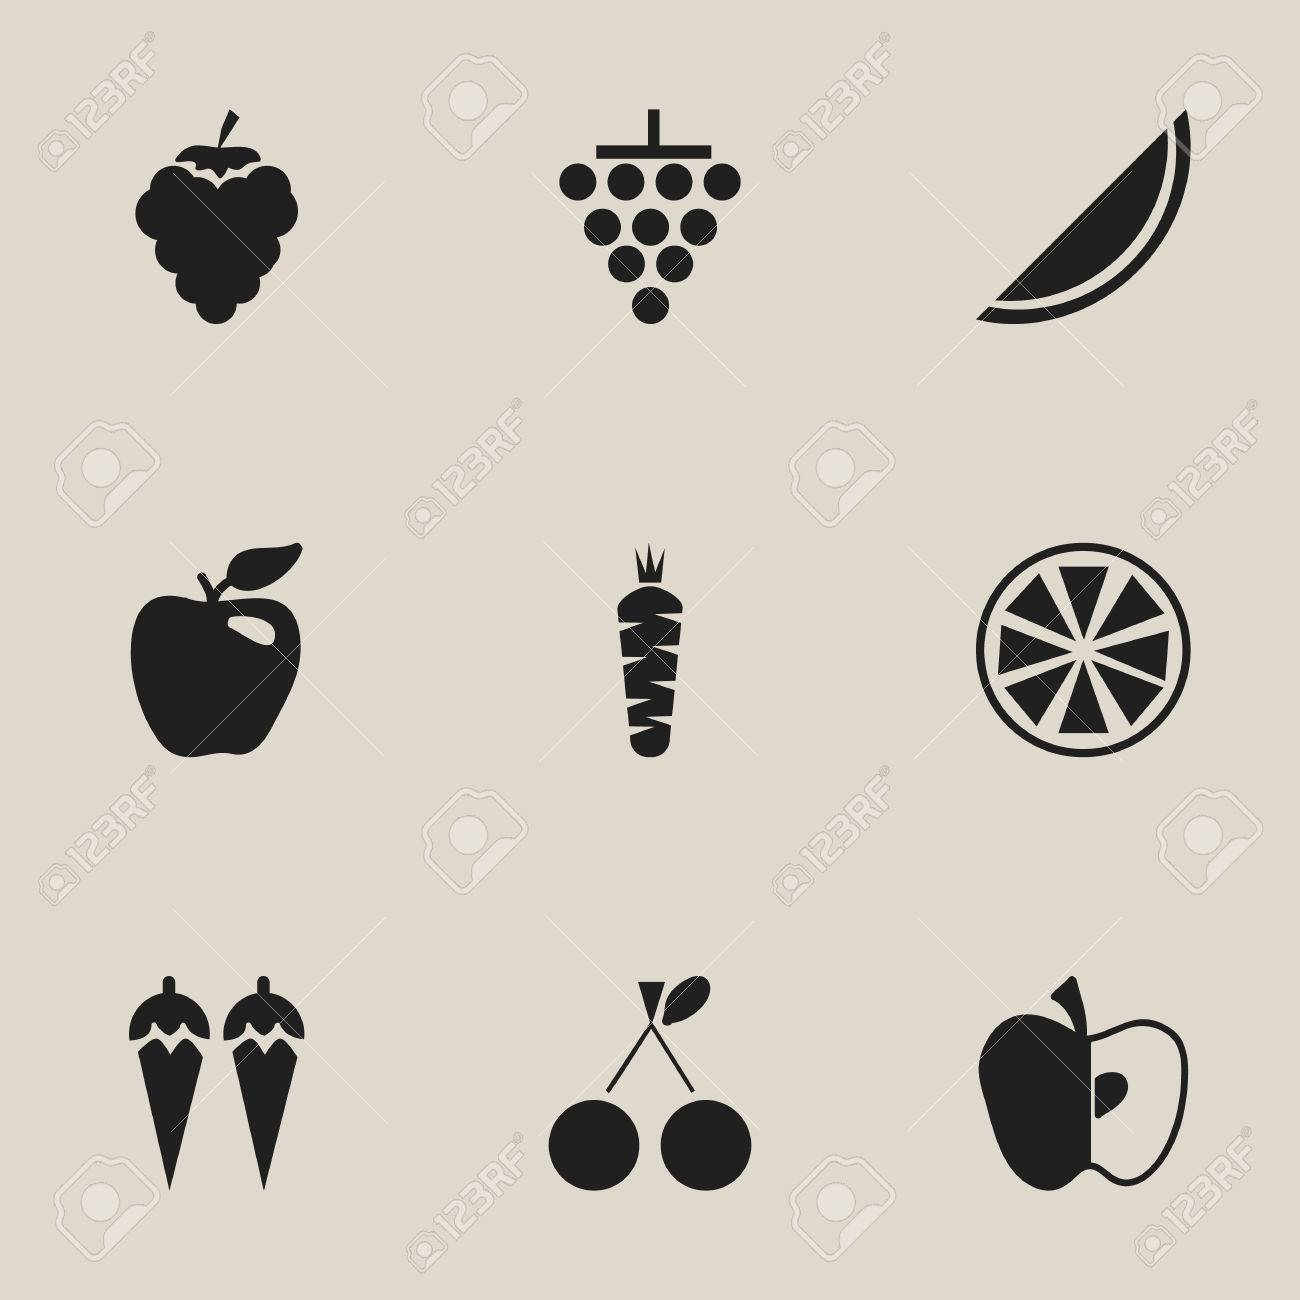 set of 9 editable fruits icons includes symbols such as chili